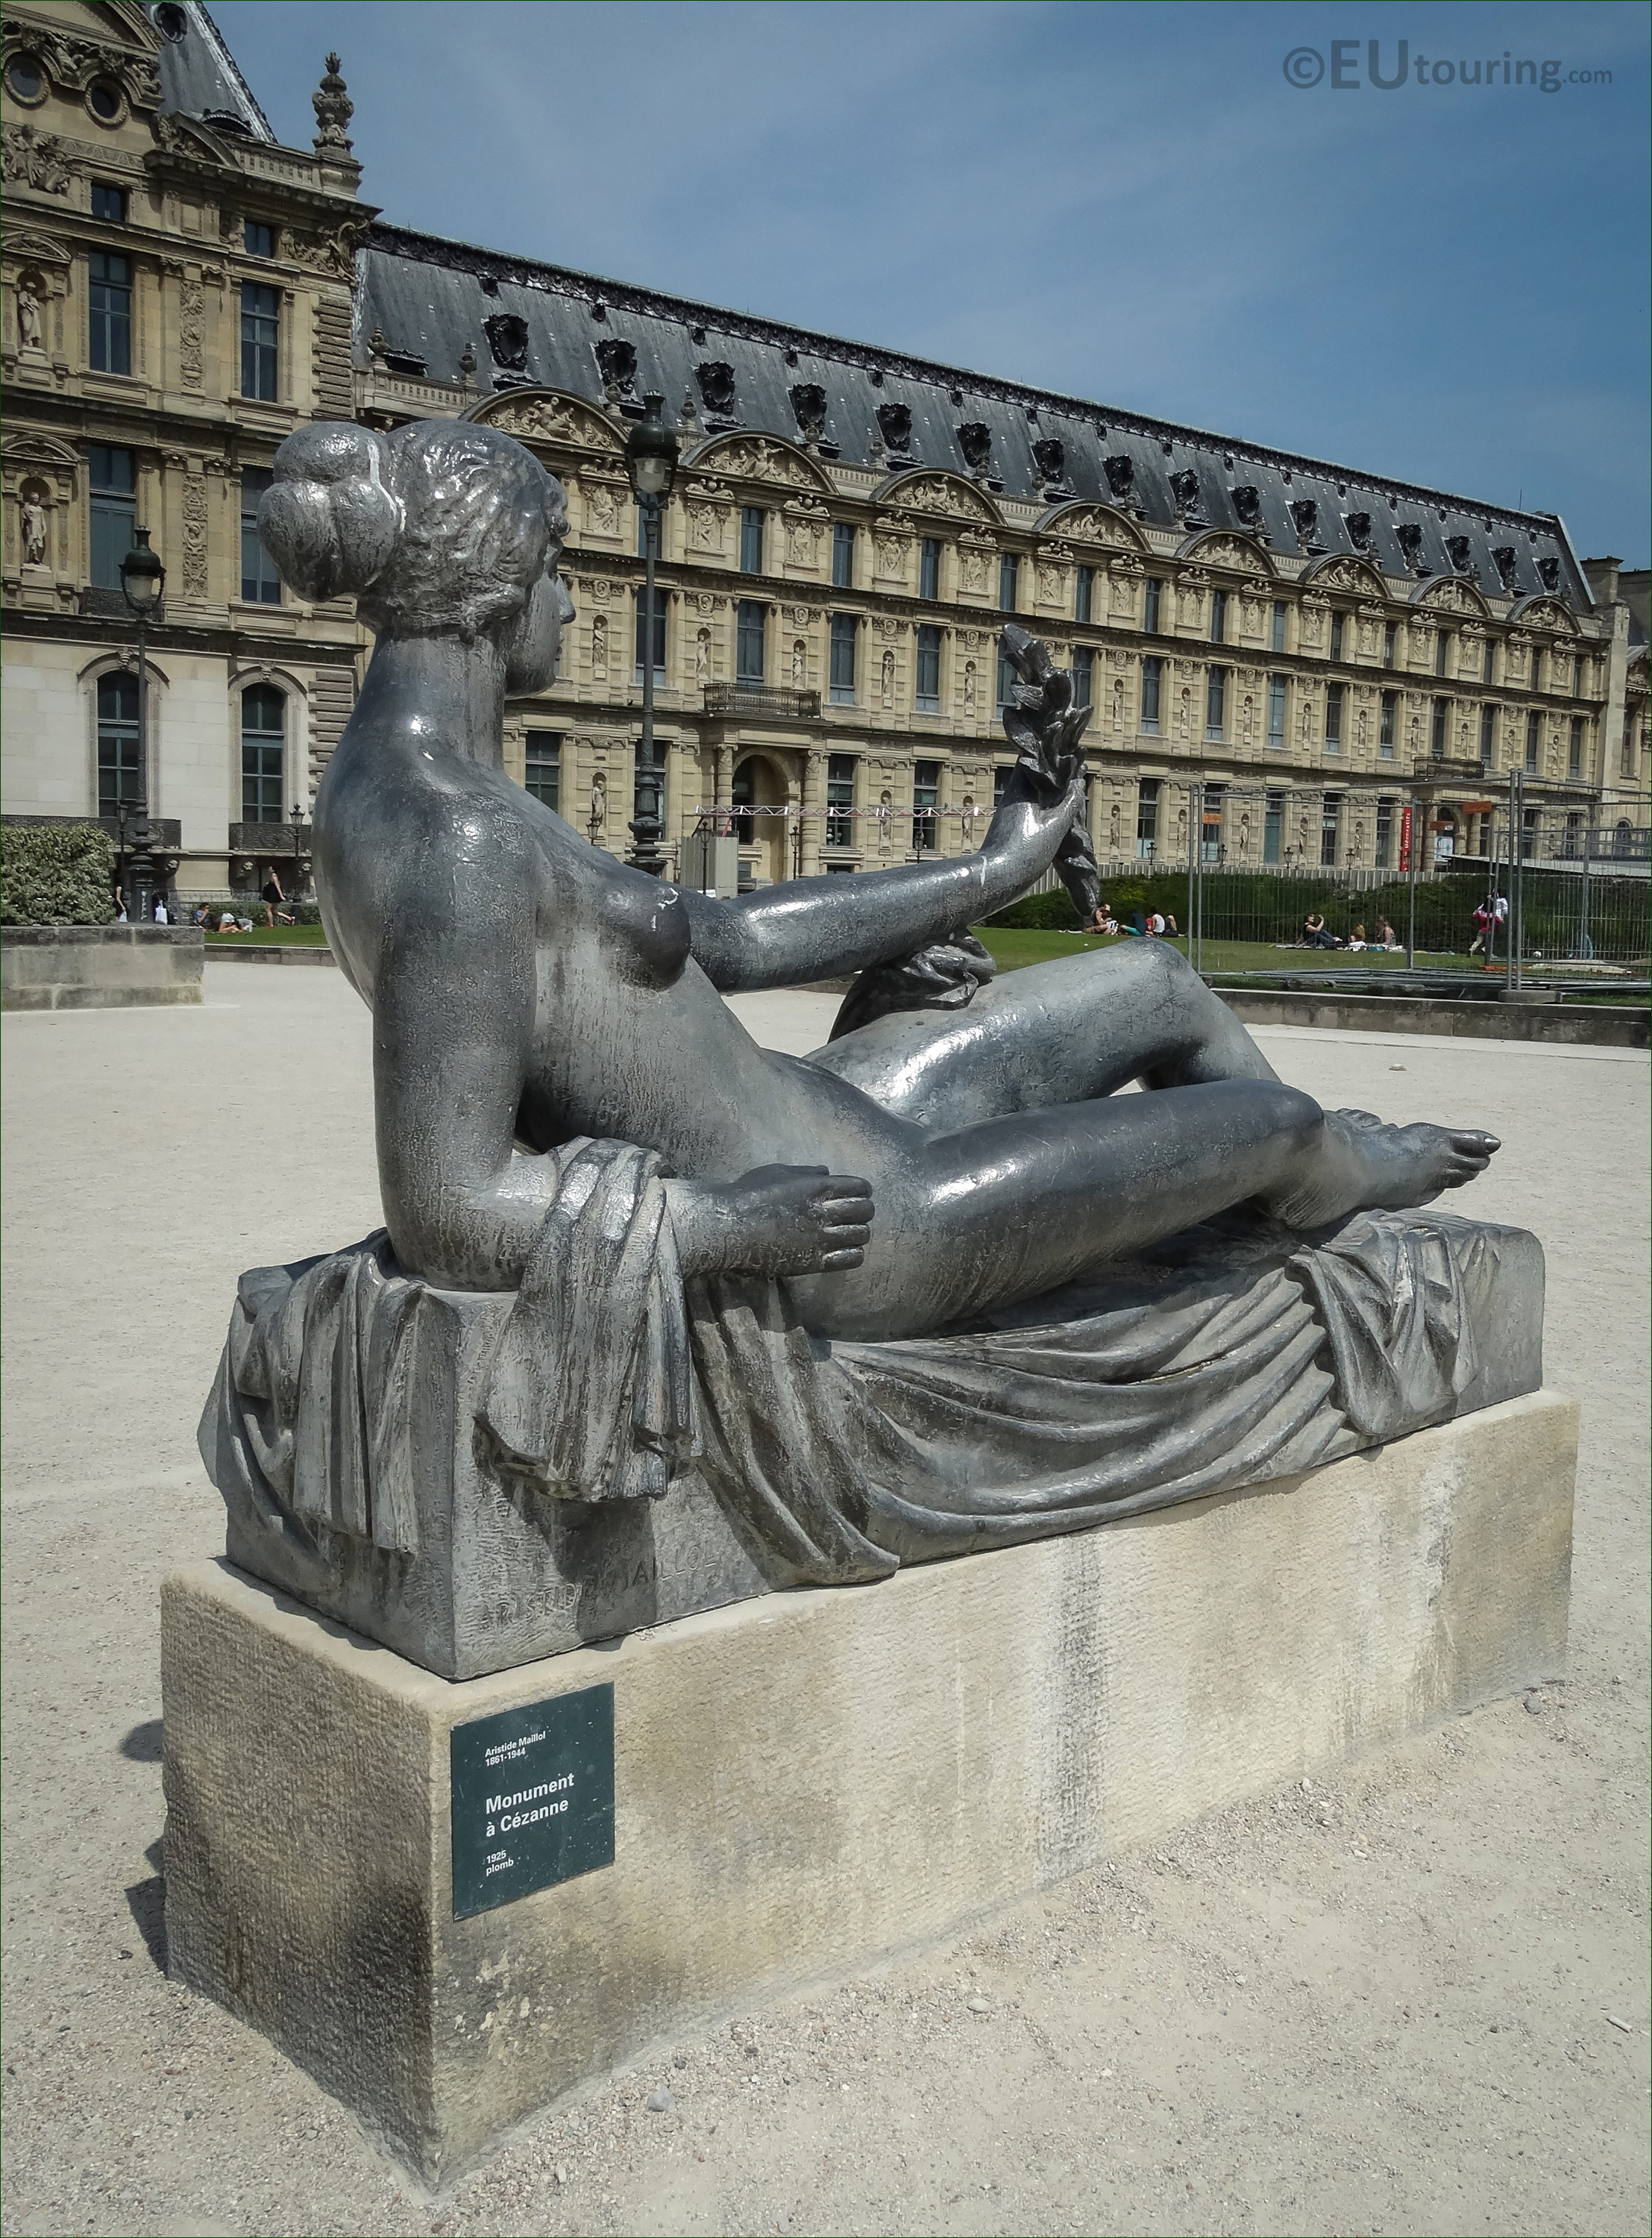 Photos of Monument a Cezanne statue by Aristide Maillol